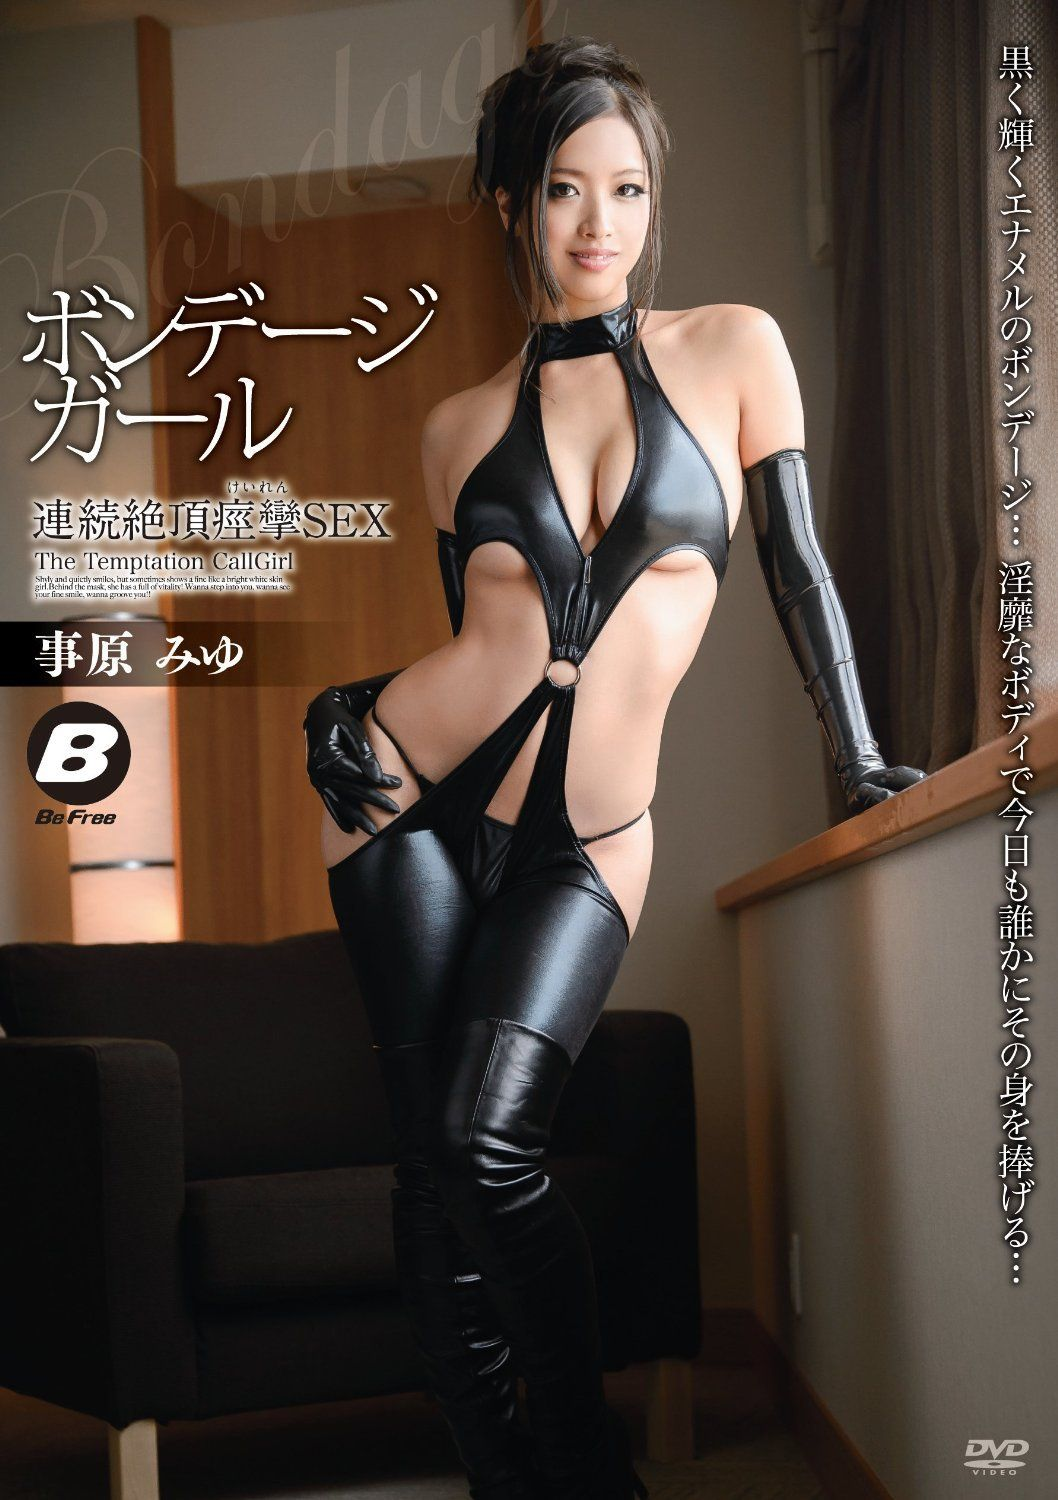 Asian Girl In Latex Lingerie Latex Suit Sexy Latex Japanese Sexy Interesting Stuff